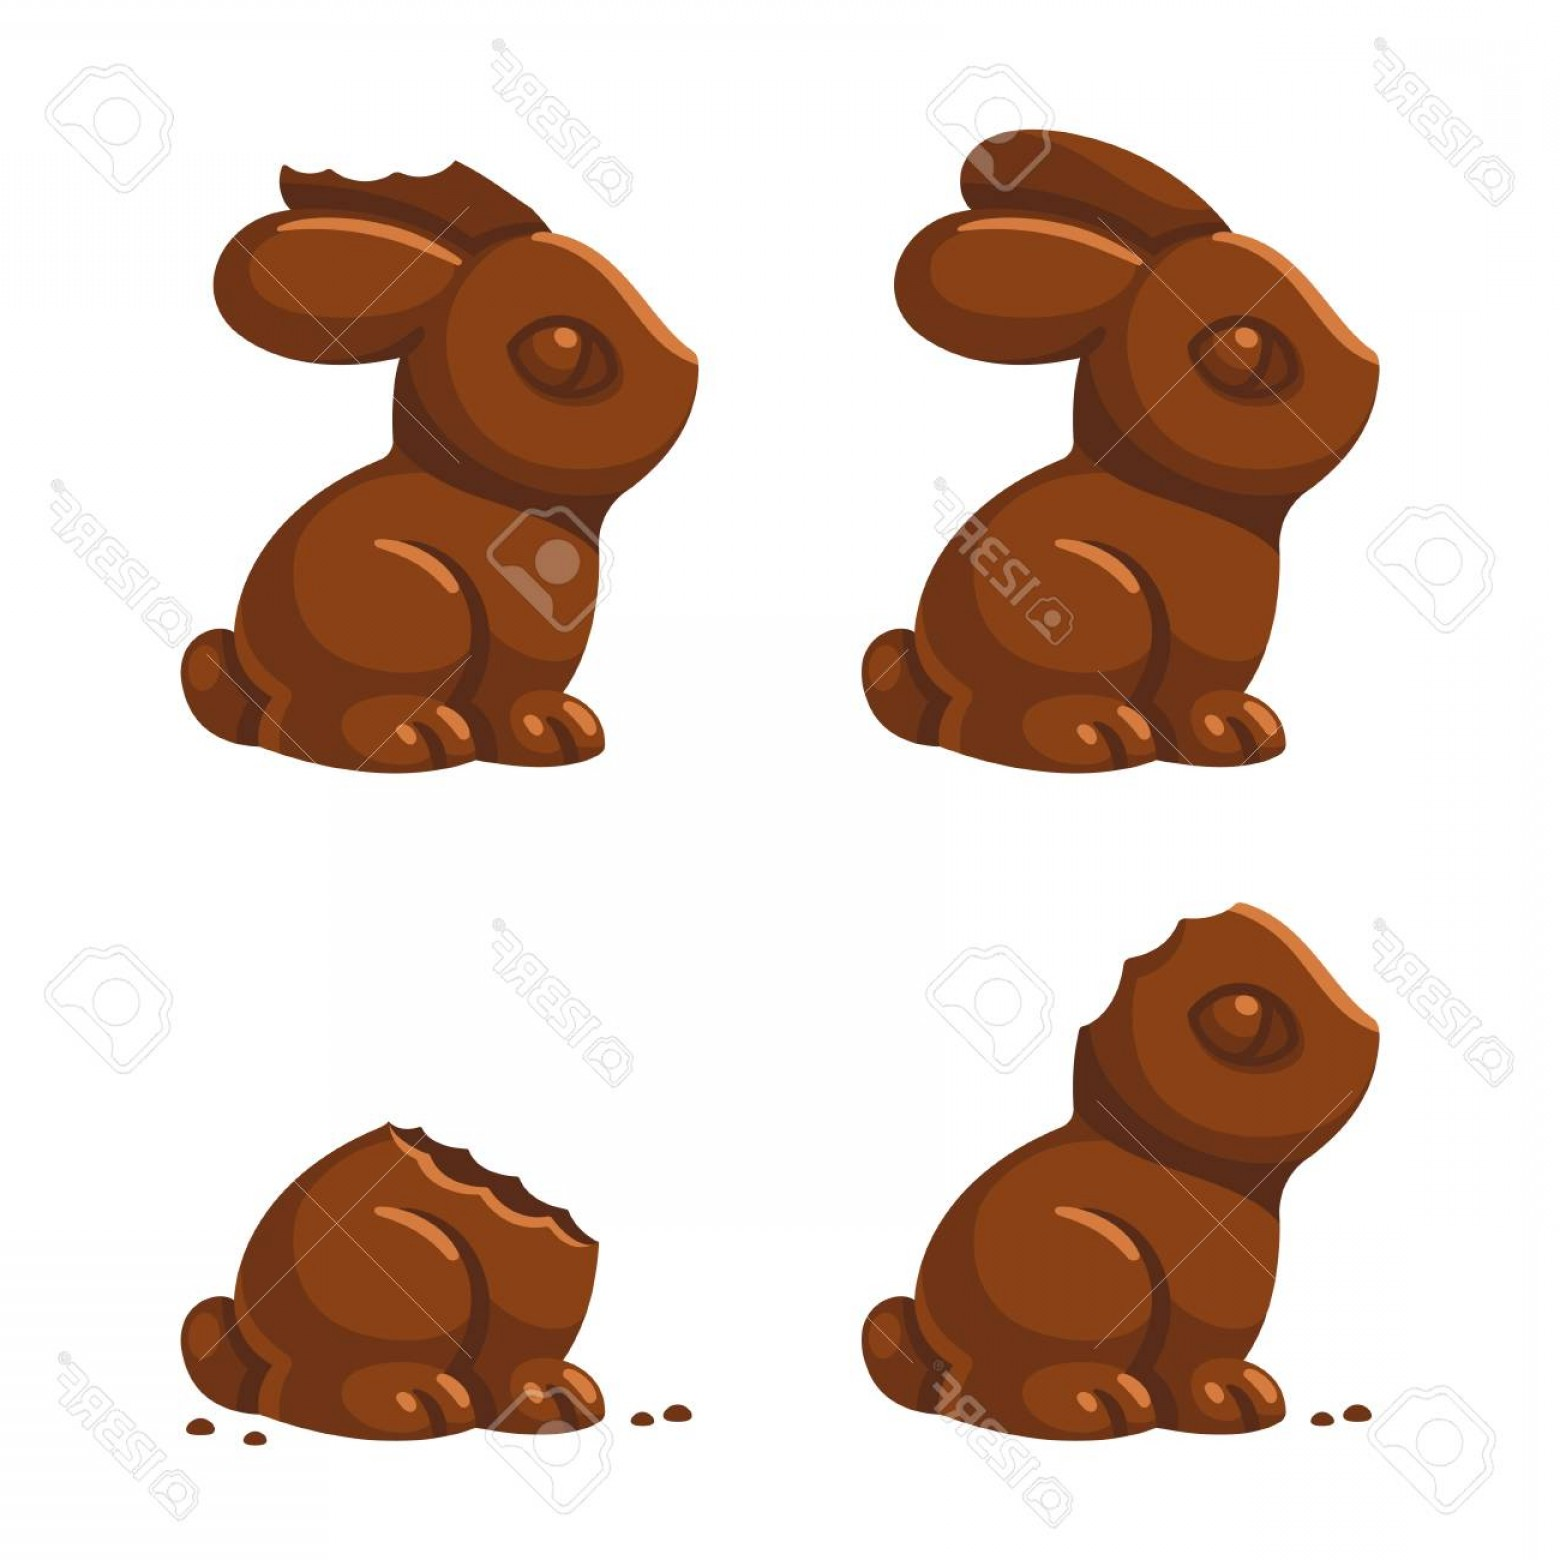 Chocolate Bunny Vector: Photostock Vector Cute Chocolate Bunny In Different Stages Of Being Eaten With A Little Bite Then Ear And Head Bitten